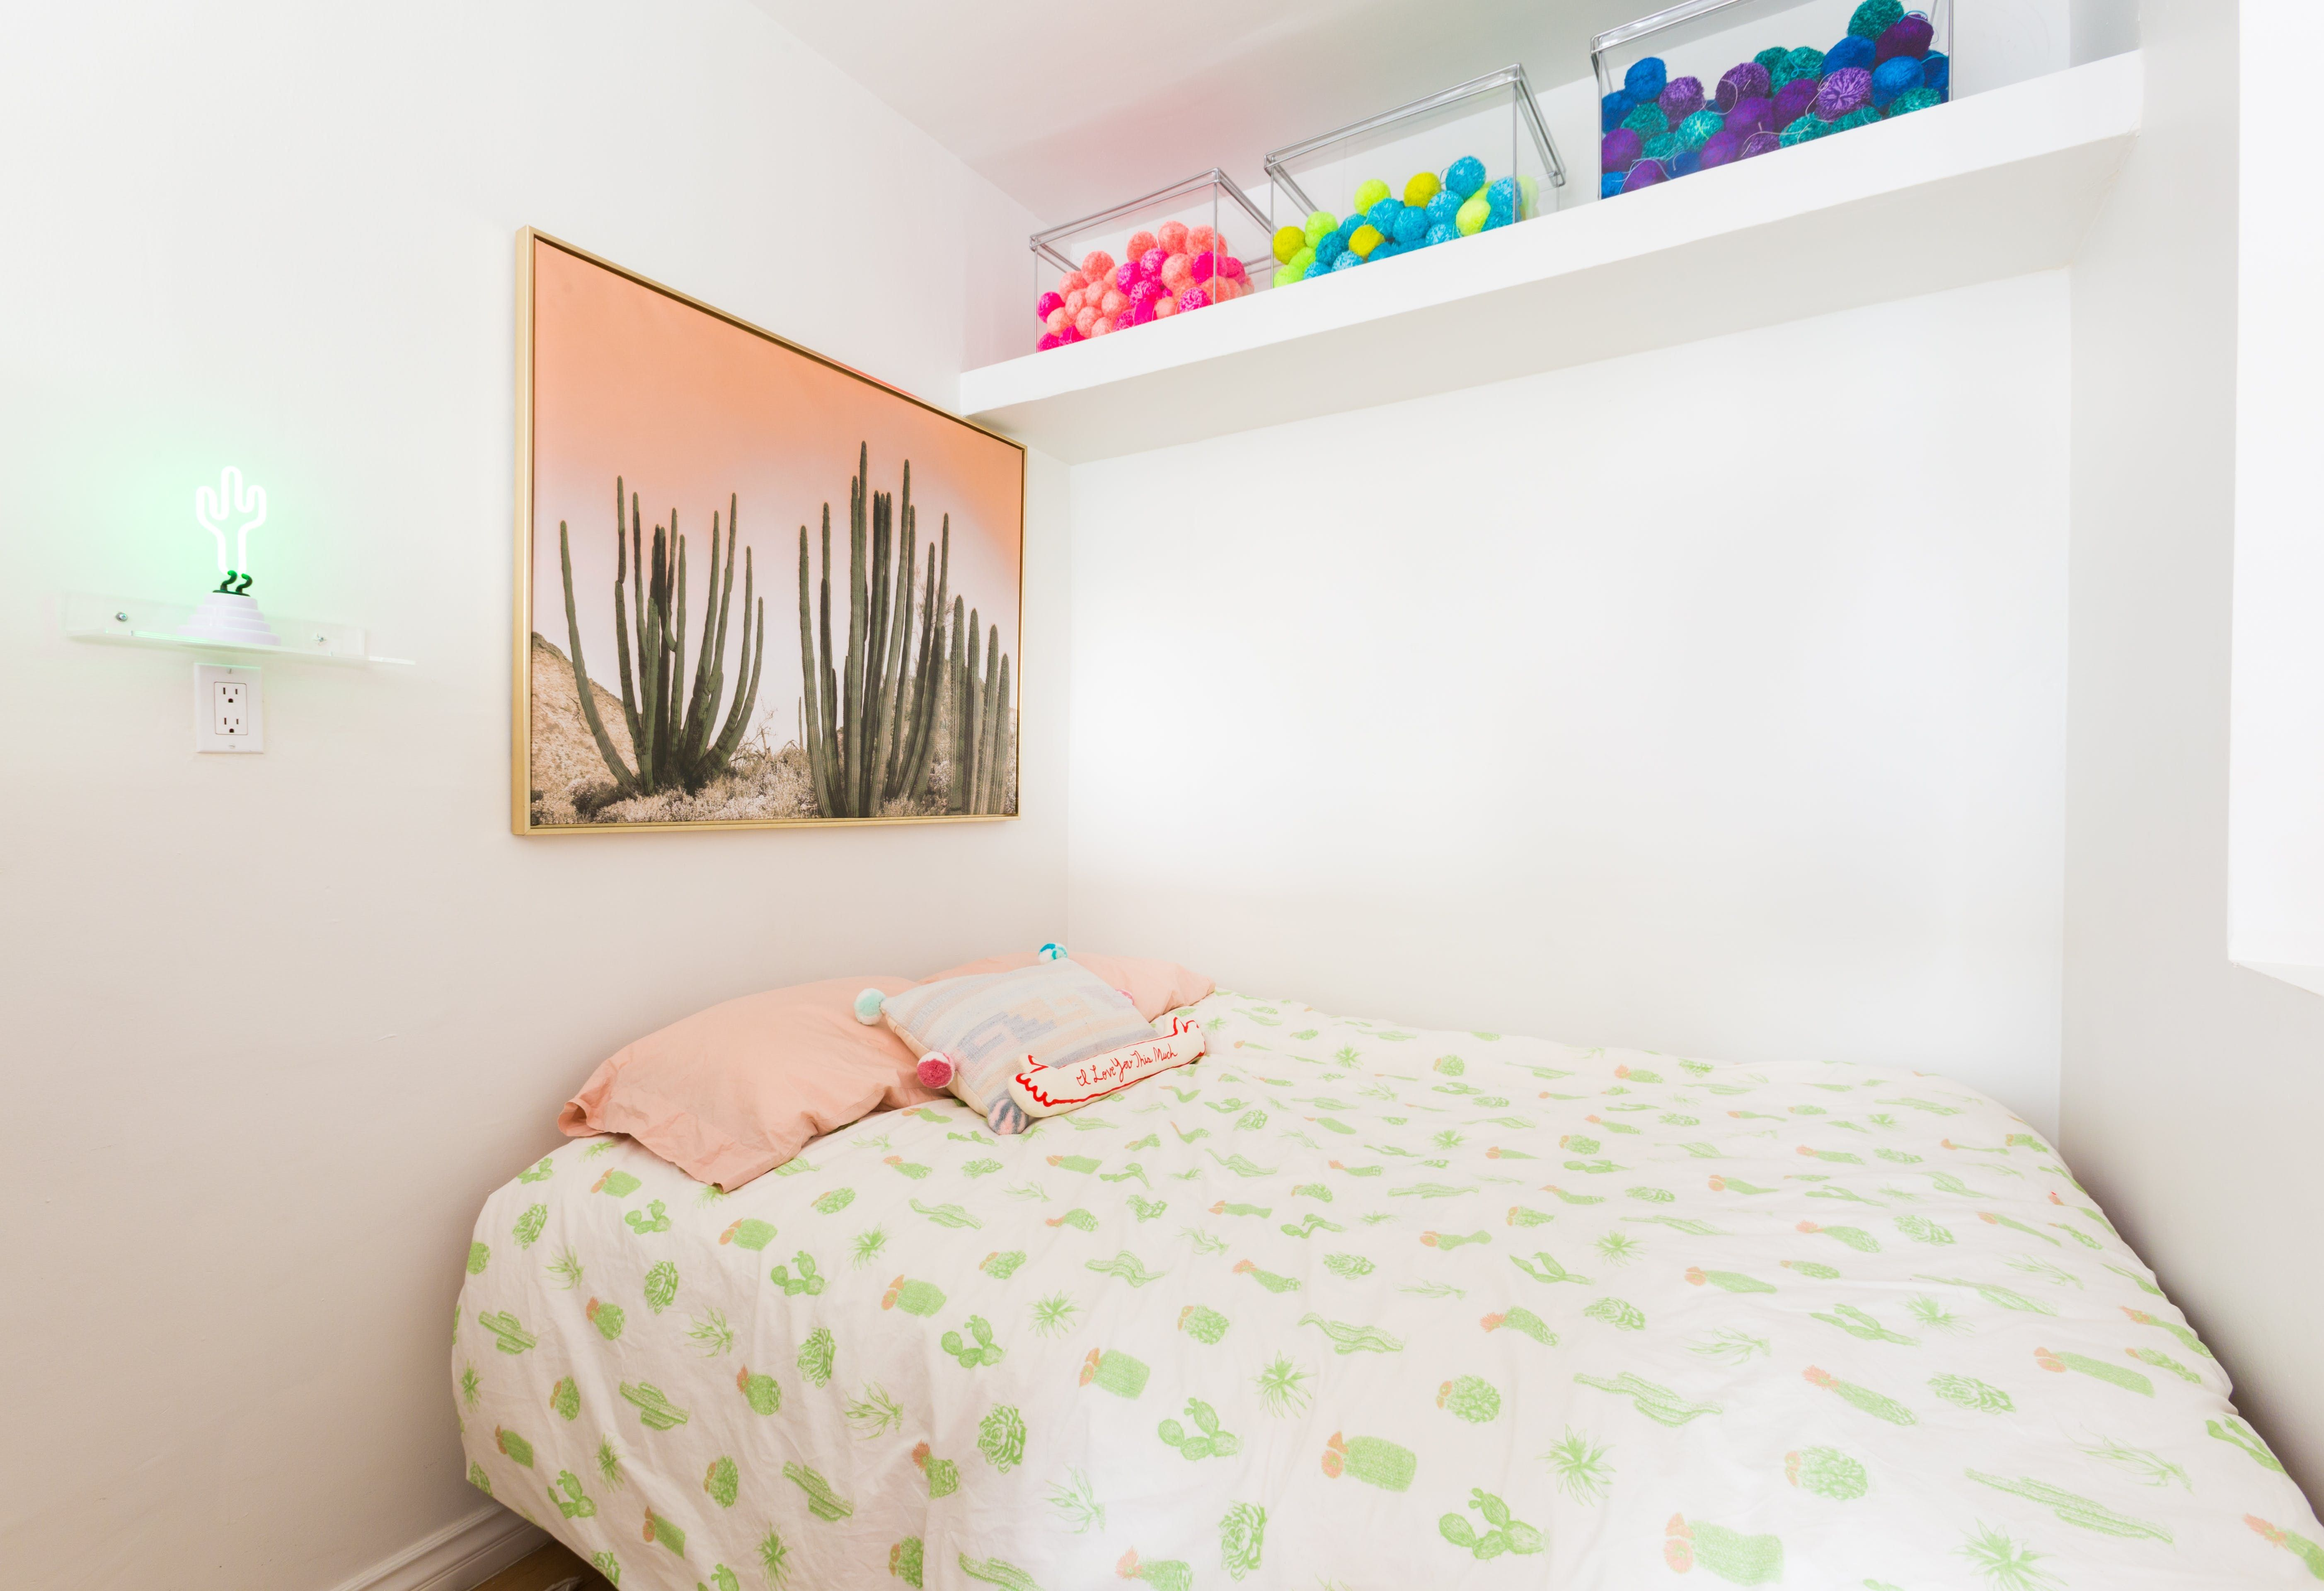 A Playful, RainbowHued LA Studio Apartment Is Tiny But